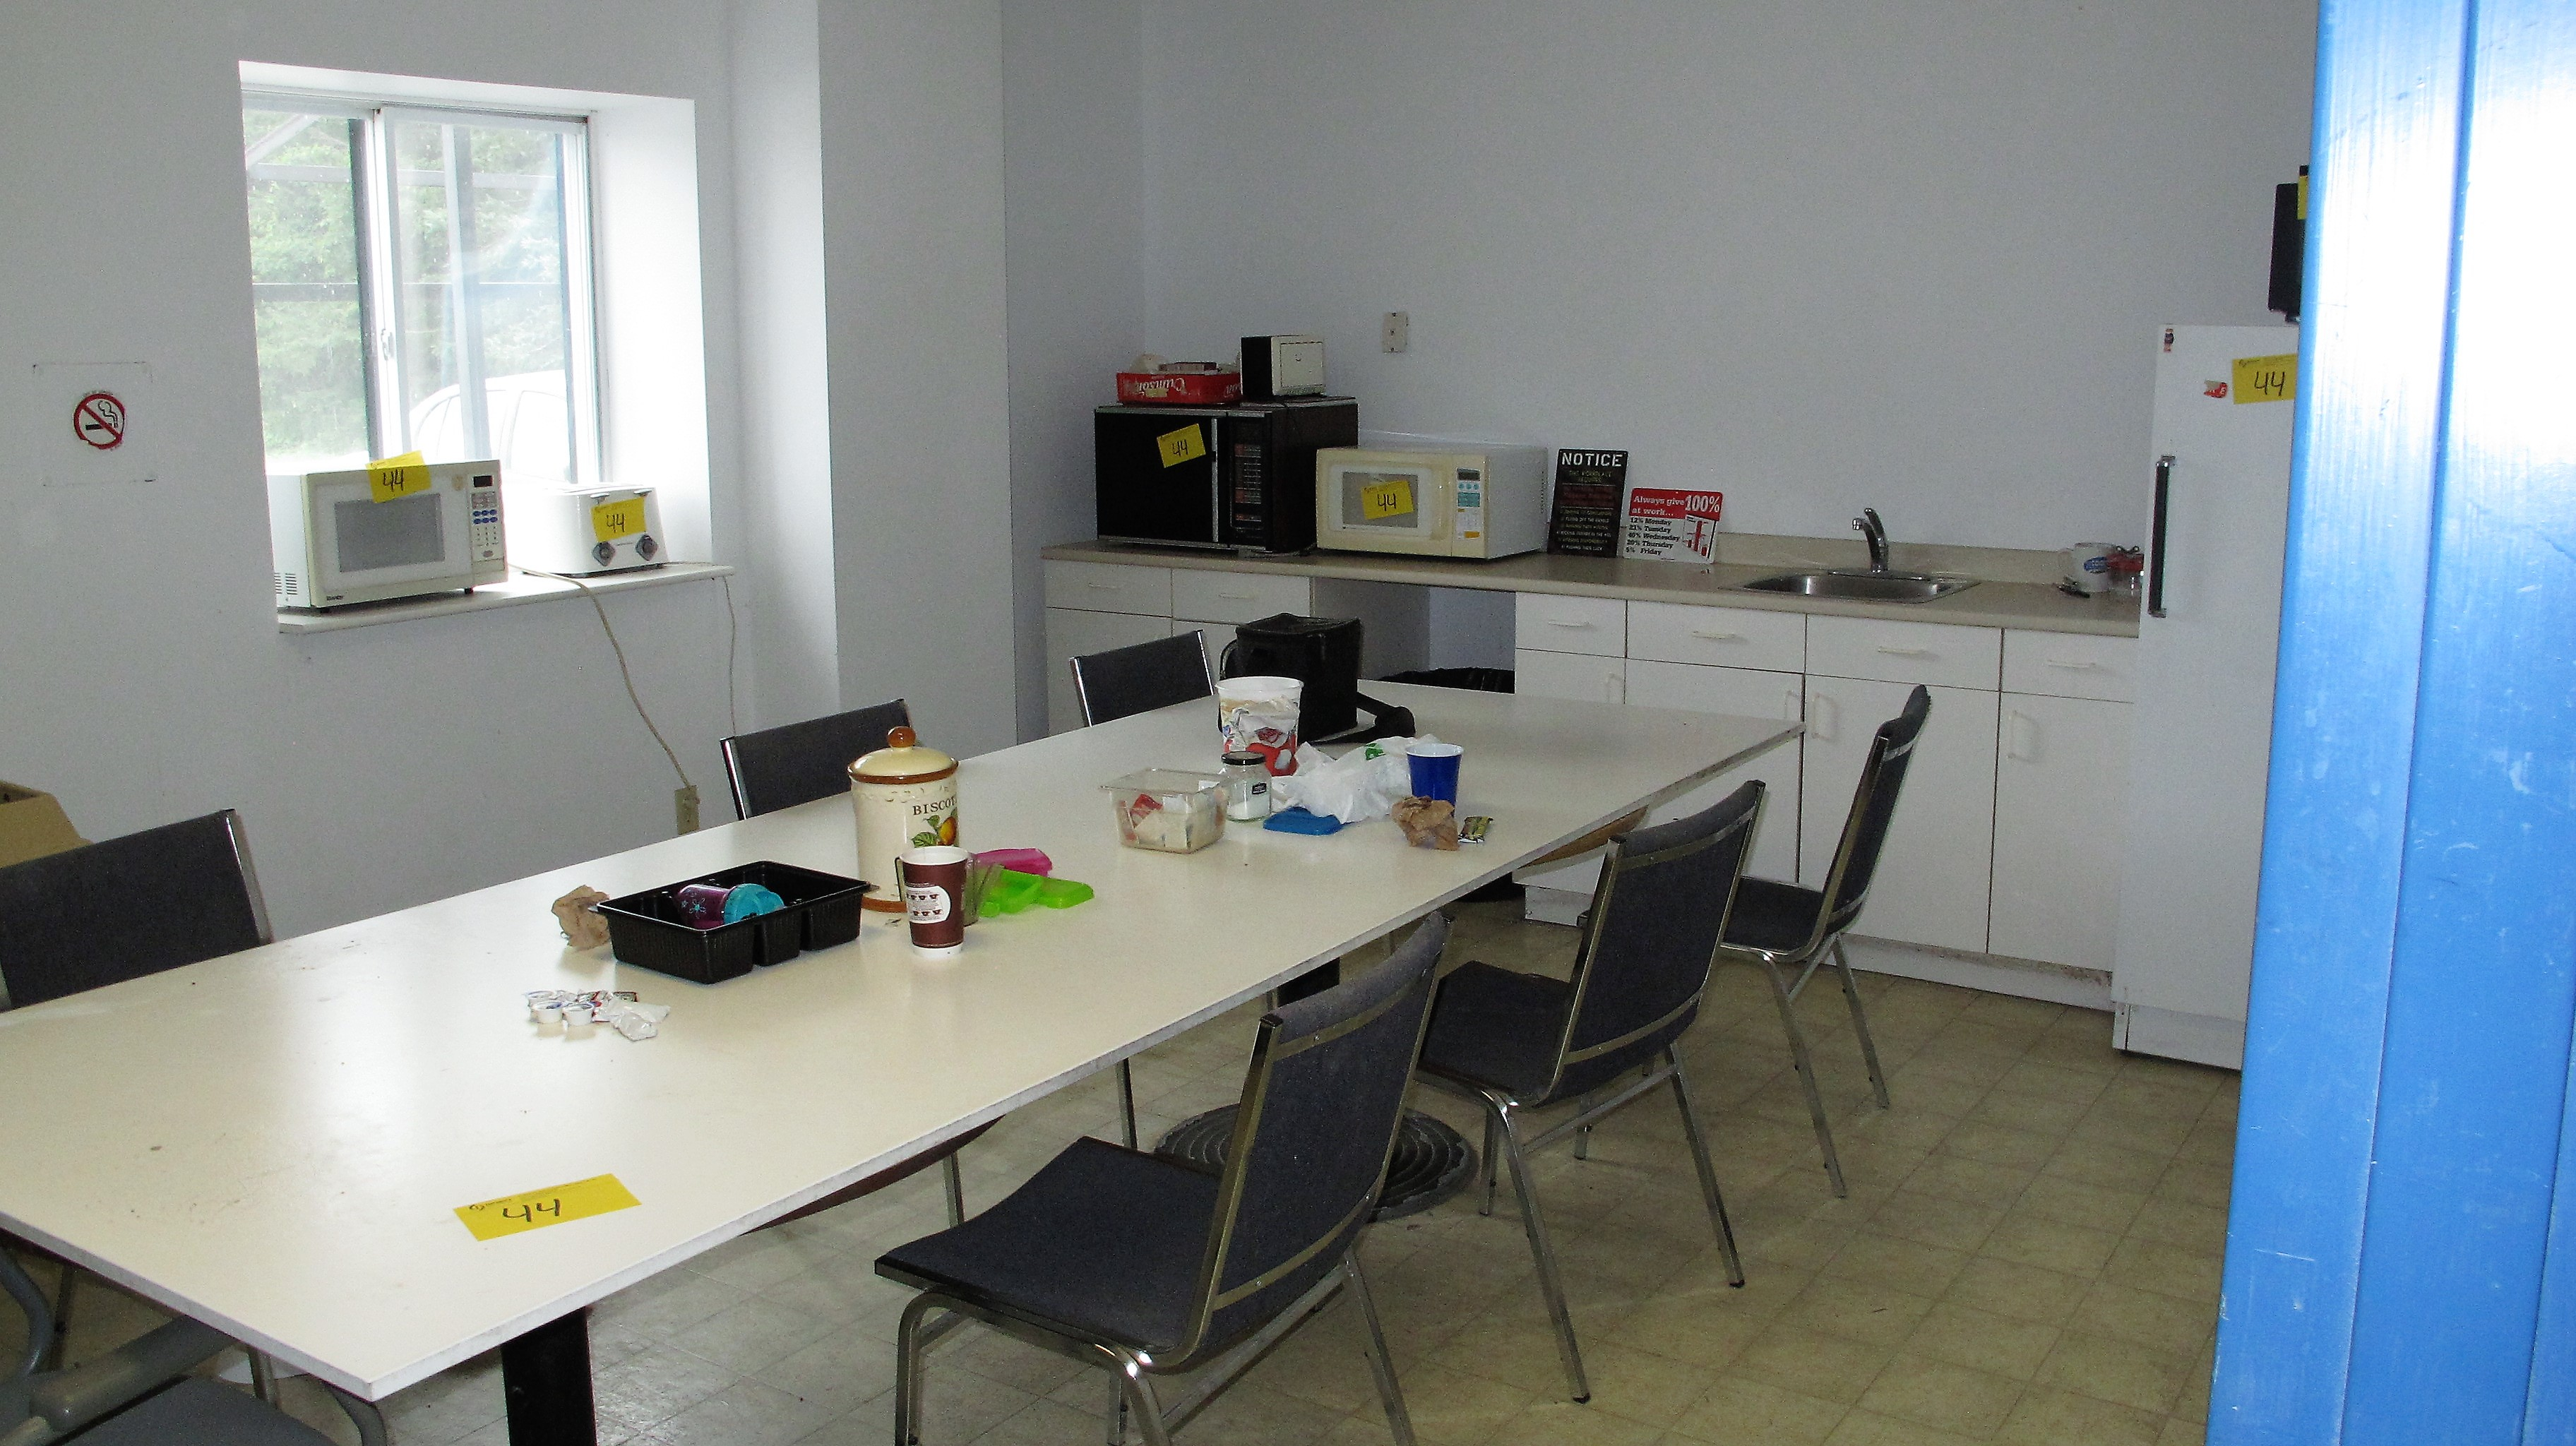 Lot 44 - LOOSE CONTENTS OF BREAK ROOM INCLUDING TABLE, CHAIRS, FRIDGE, MICROWAVES, TOASTER, ETC. (NO PERSONAL